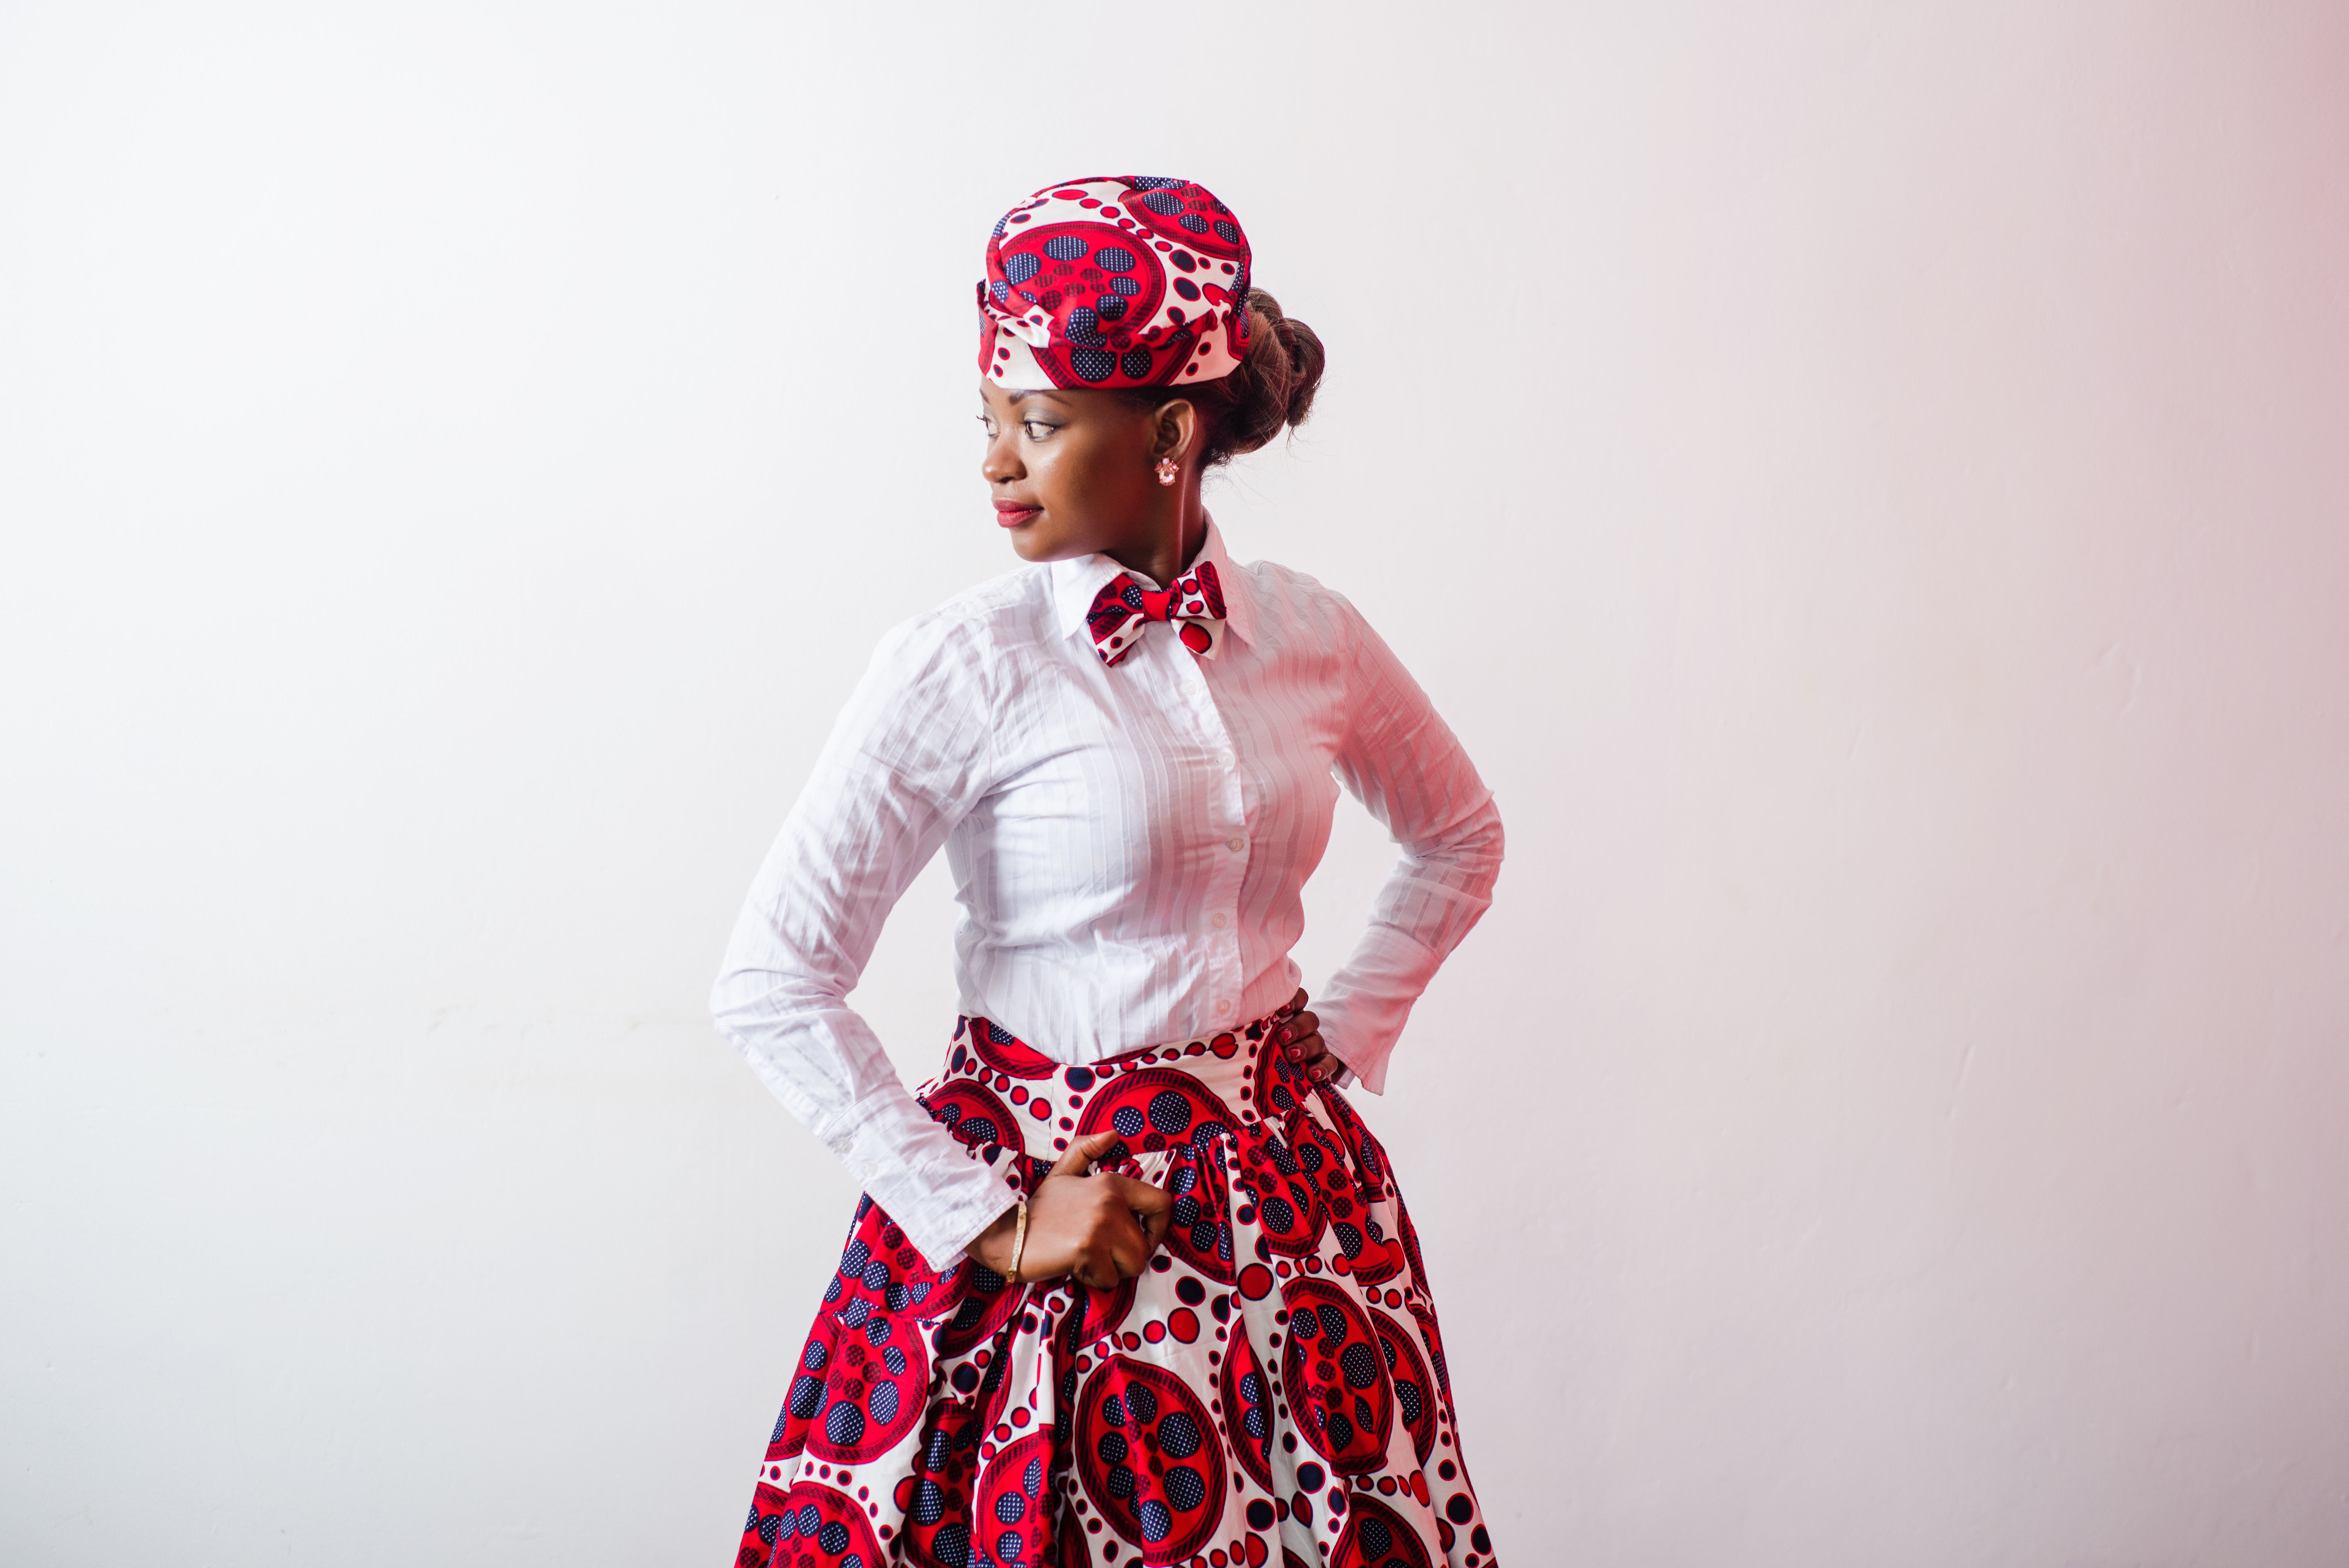 Ugandan talent. In this photo, it showcases African Fabric, tailoring, beauty and makeup artistry. Date 3 September 2015 Source Own work Author Stellar Kiwanuka